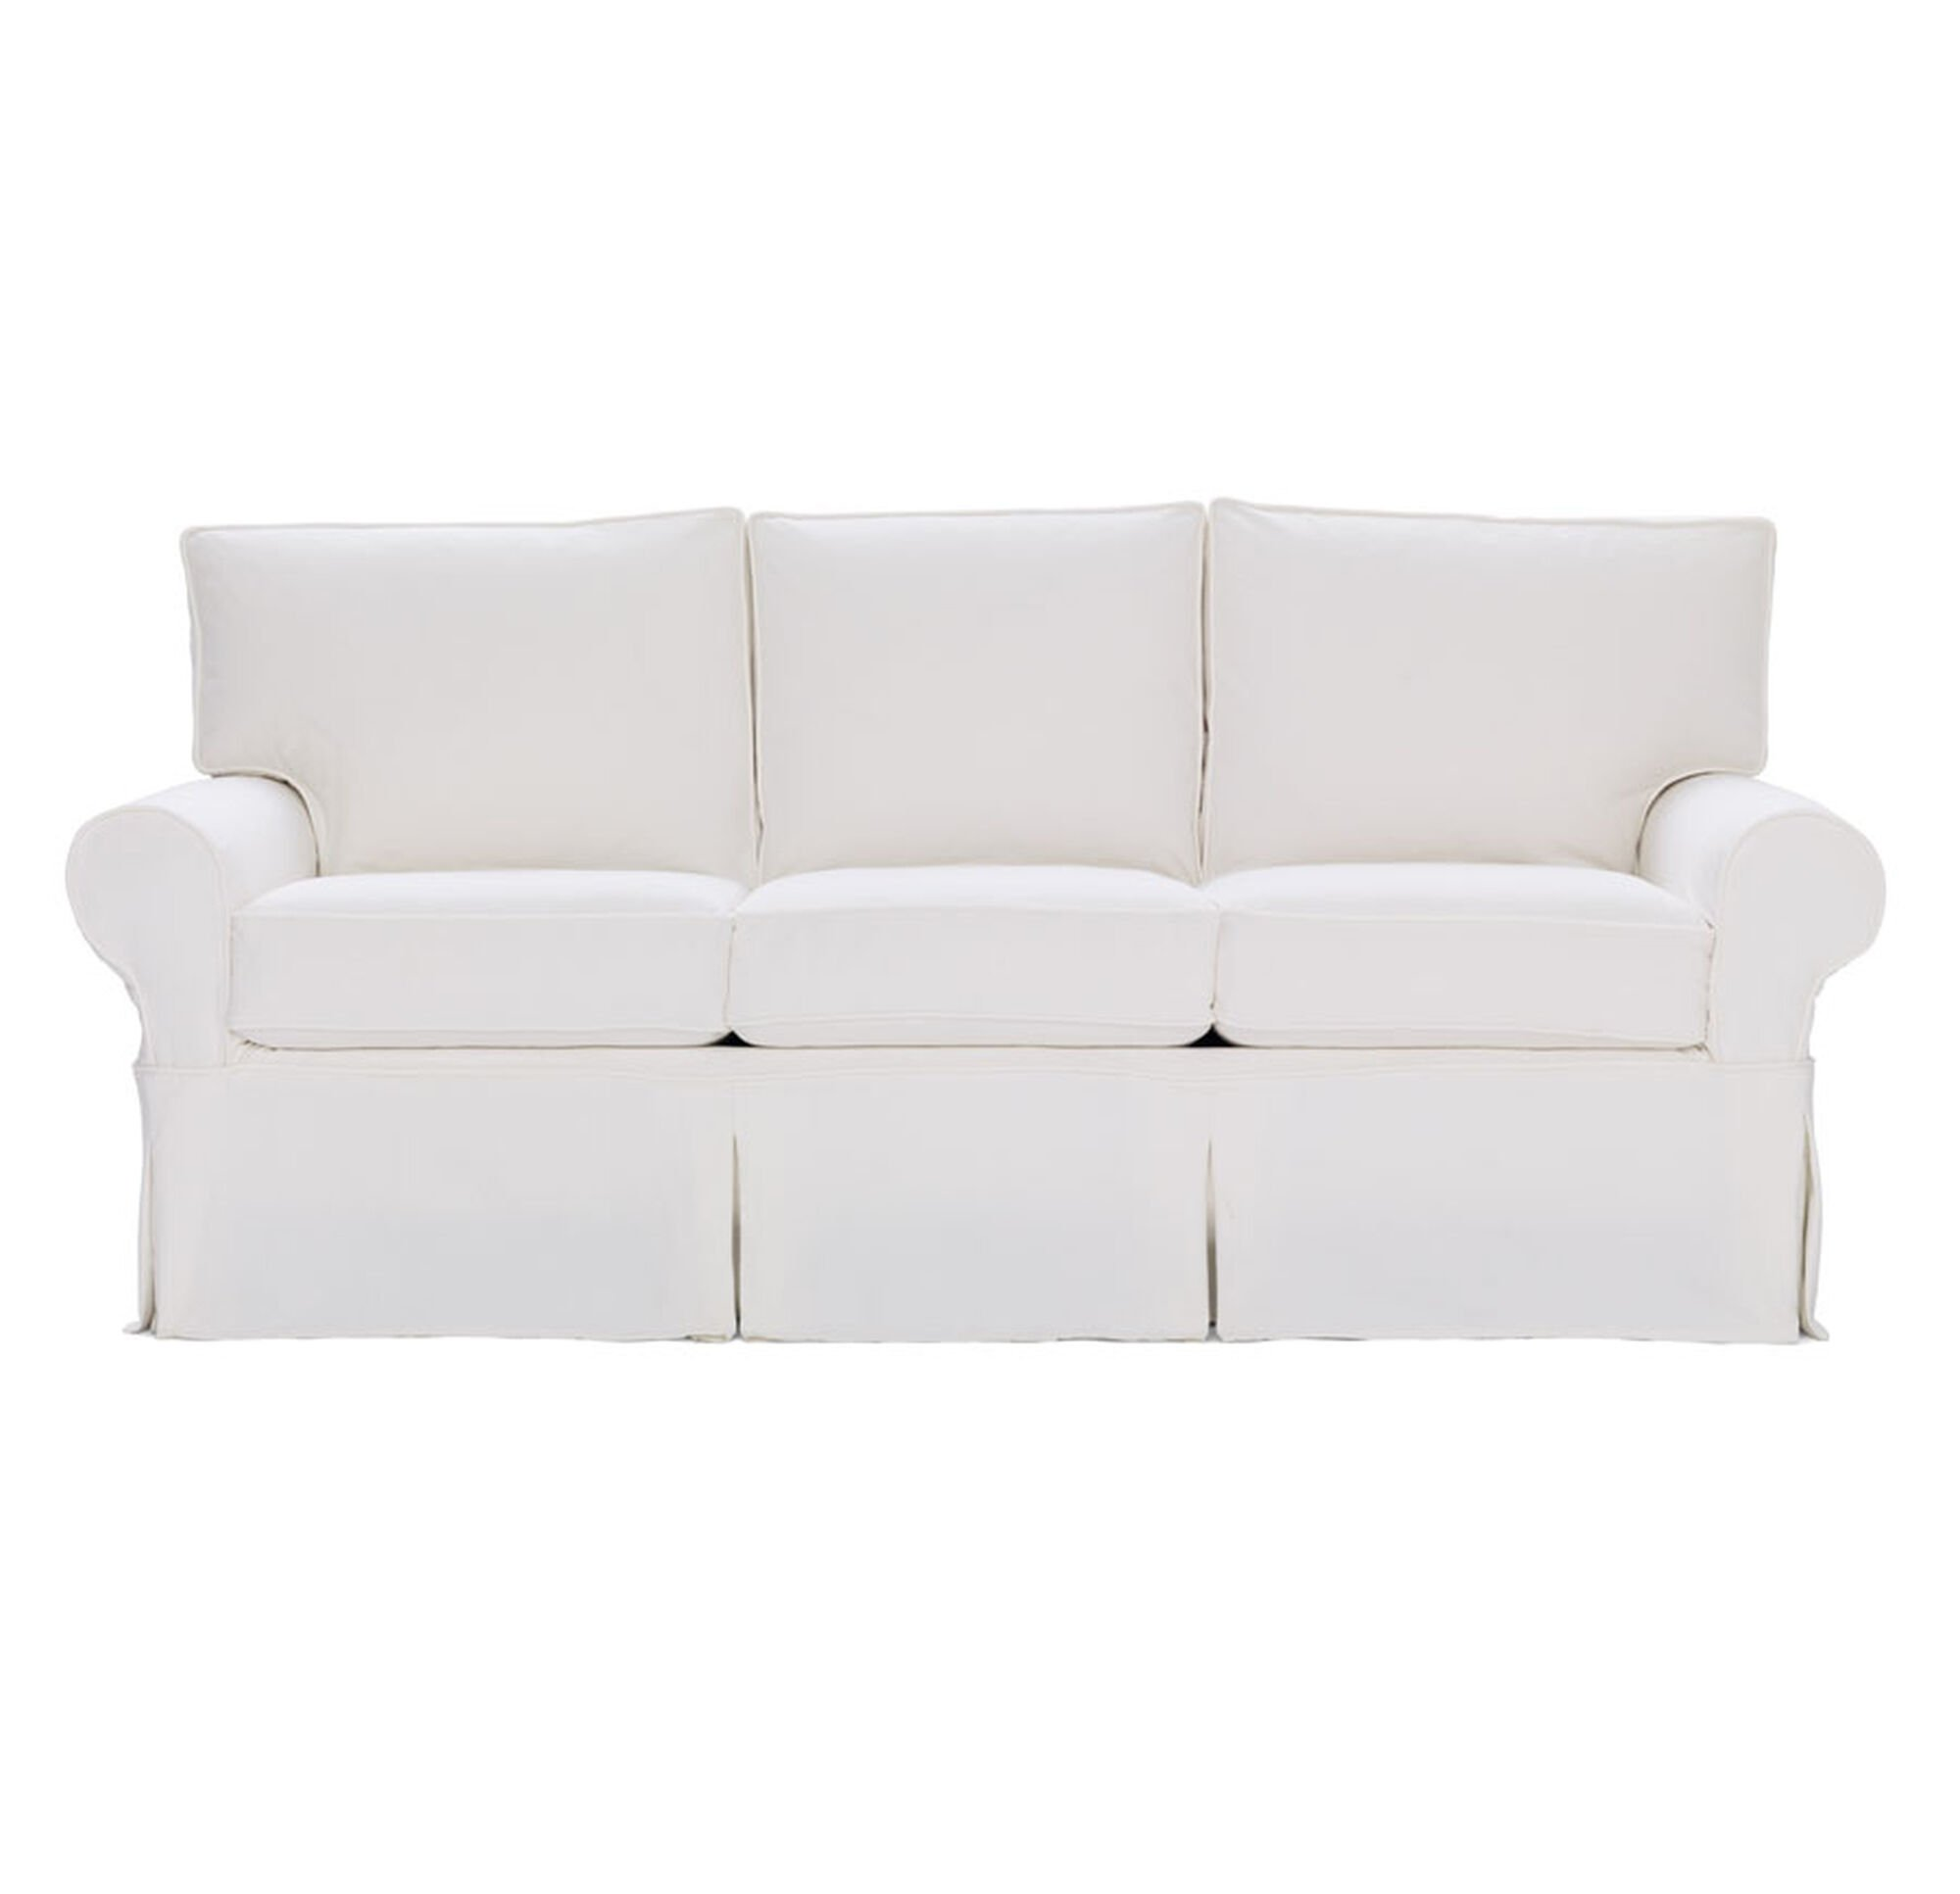 Astonishing Alexa Ii Super Luxe Queen Slipcover Sleeper Sofa Gmtry Best Dining Table And Chair Ideas Images Gmtryco